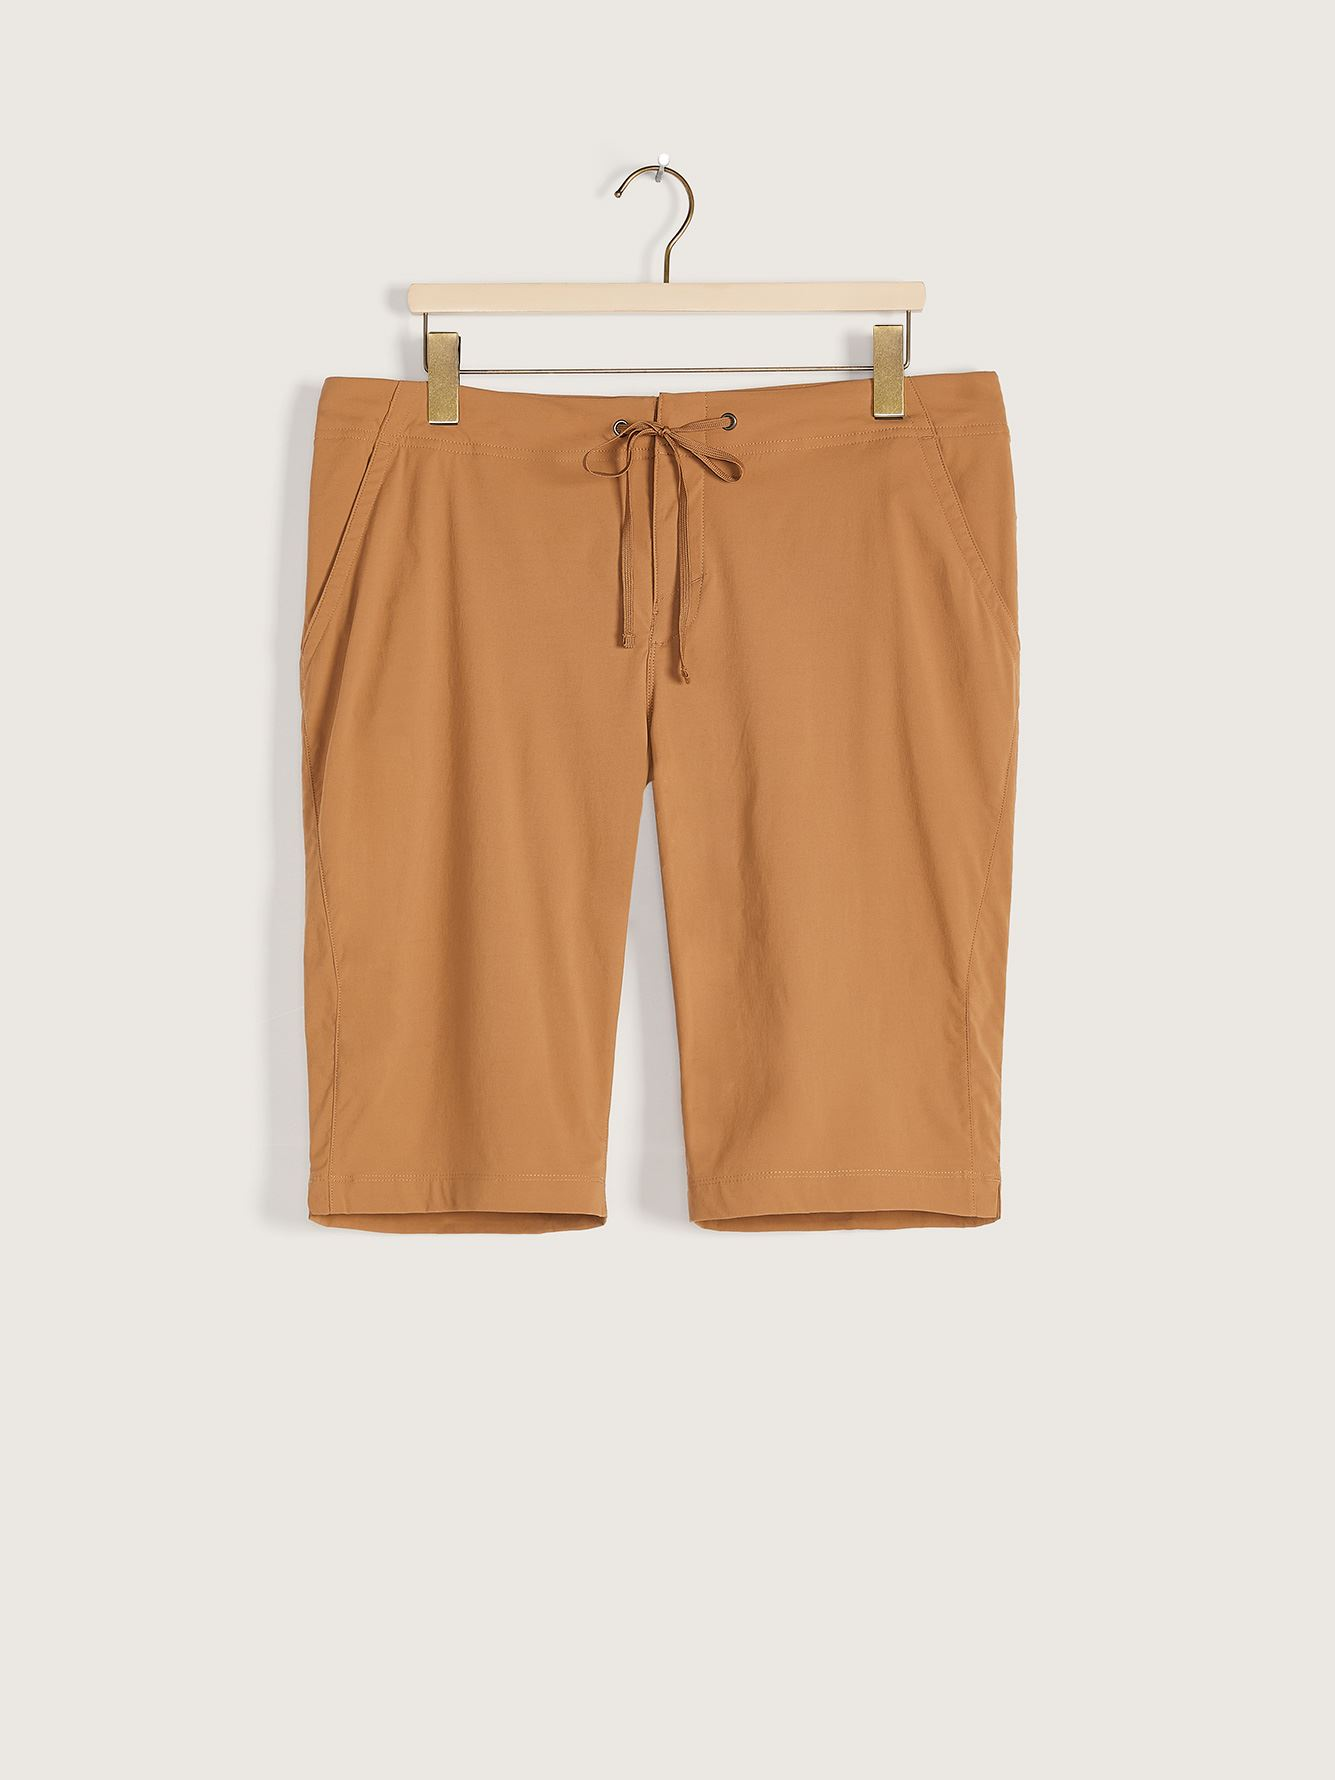 Anytime Outdoor Long Short - Columbia